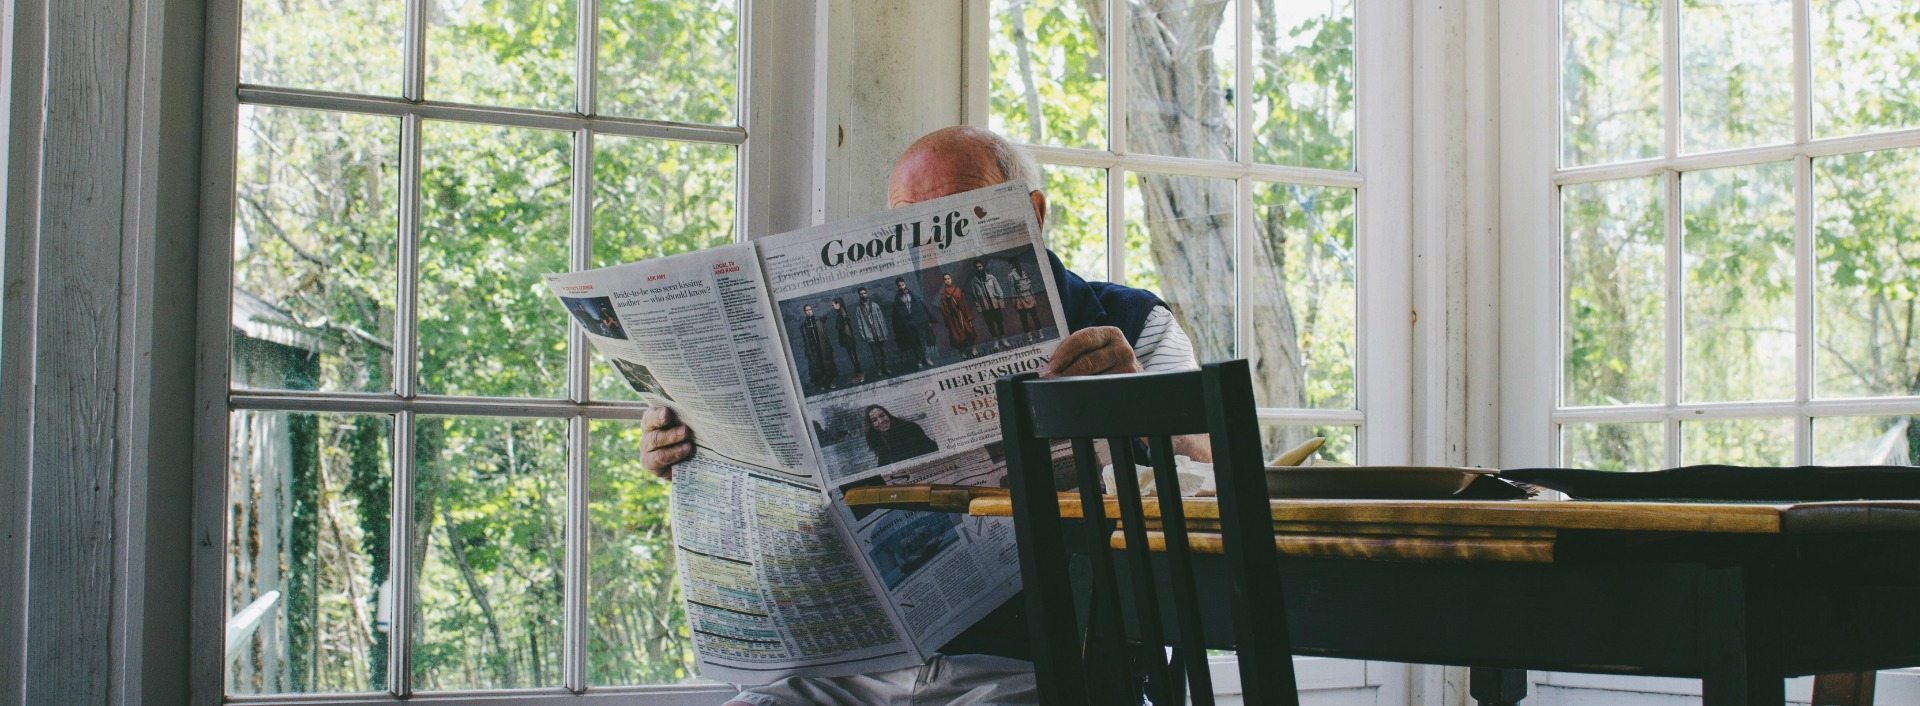 A man is reading the news headlines of the newspaper to learn better English.